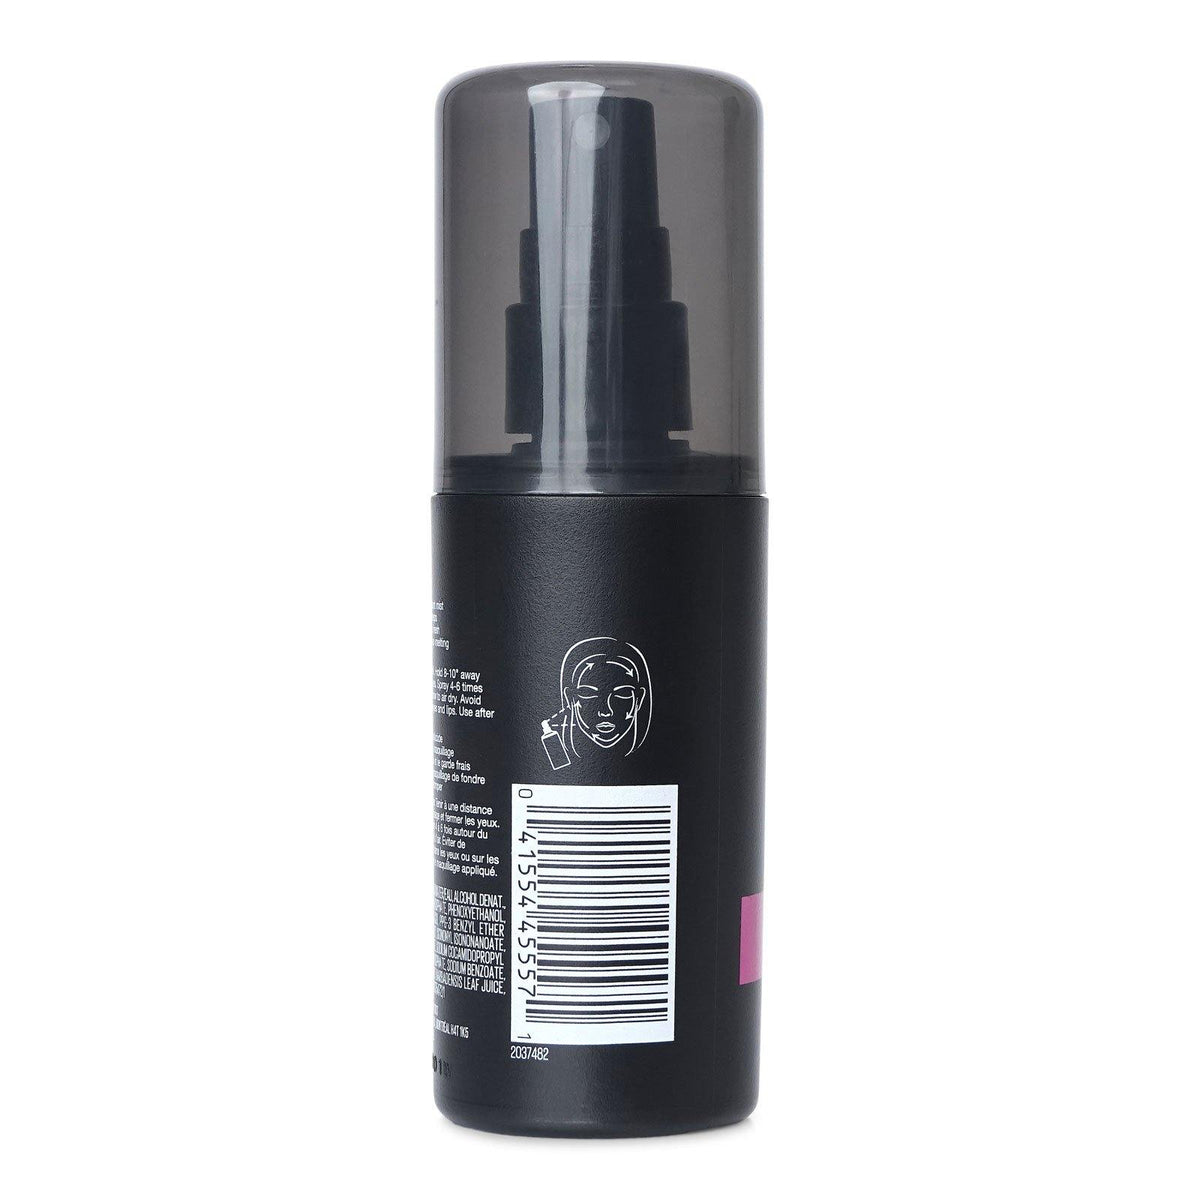 Maybelline Facestudio Master Fix Setting Spray, Translucent